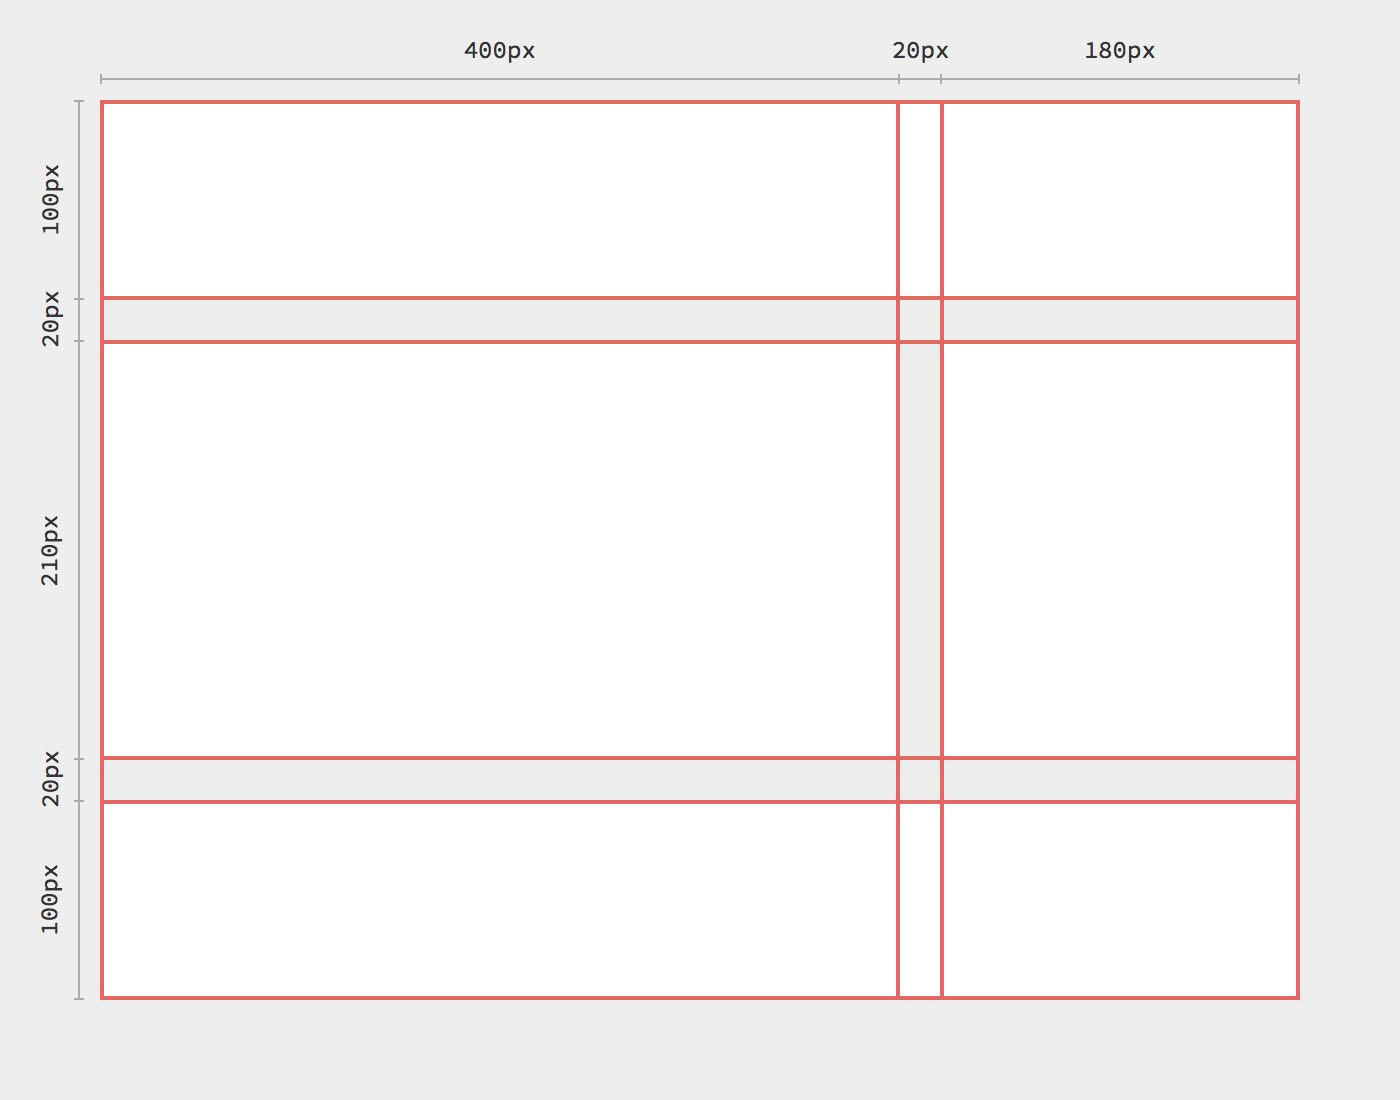 CSS grid template columns and rows